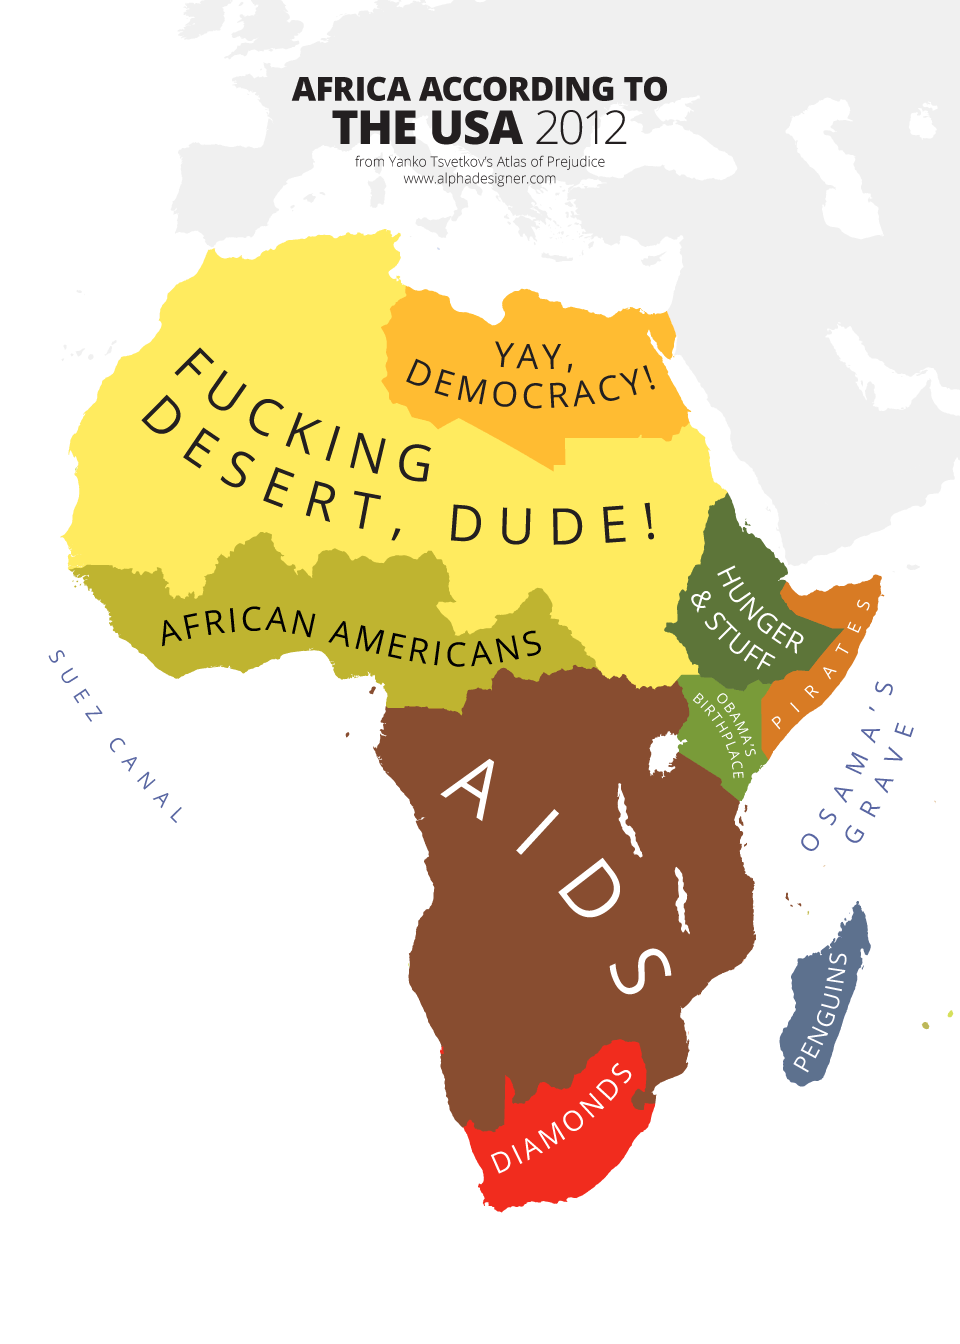 africa-according-to-usa